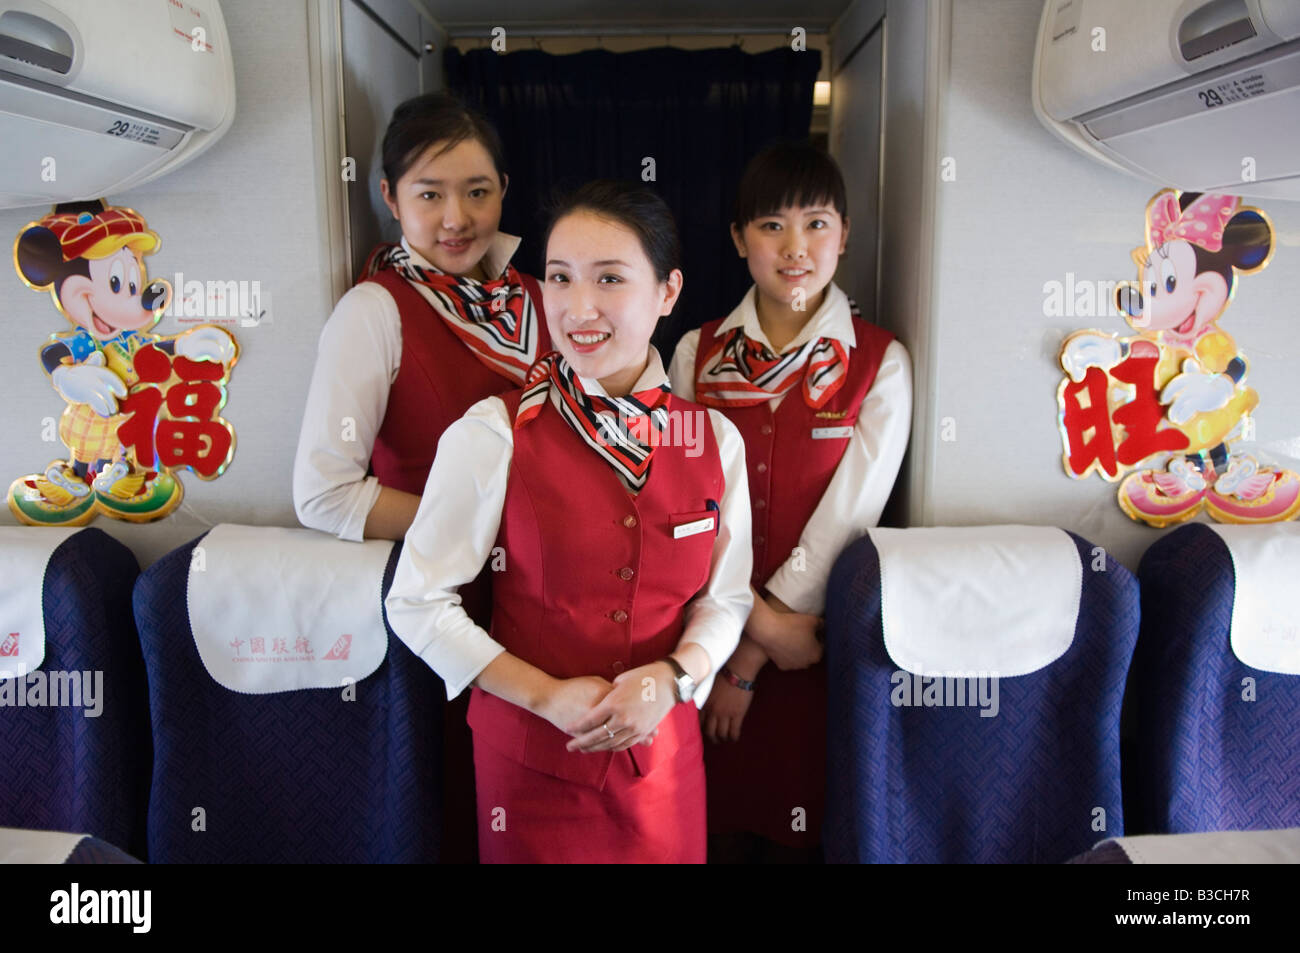 flight attendants stock photos flight attendants stock images chinese new year flight attendants on a new years eve flight